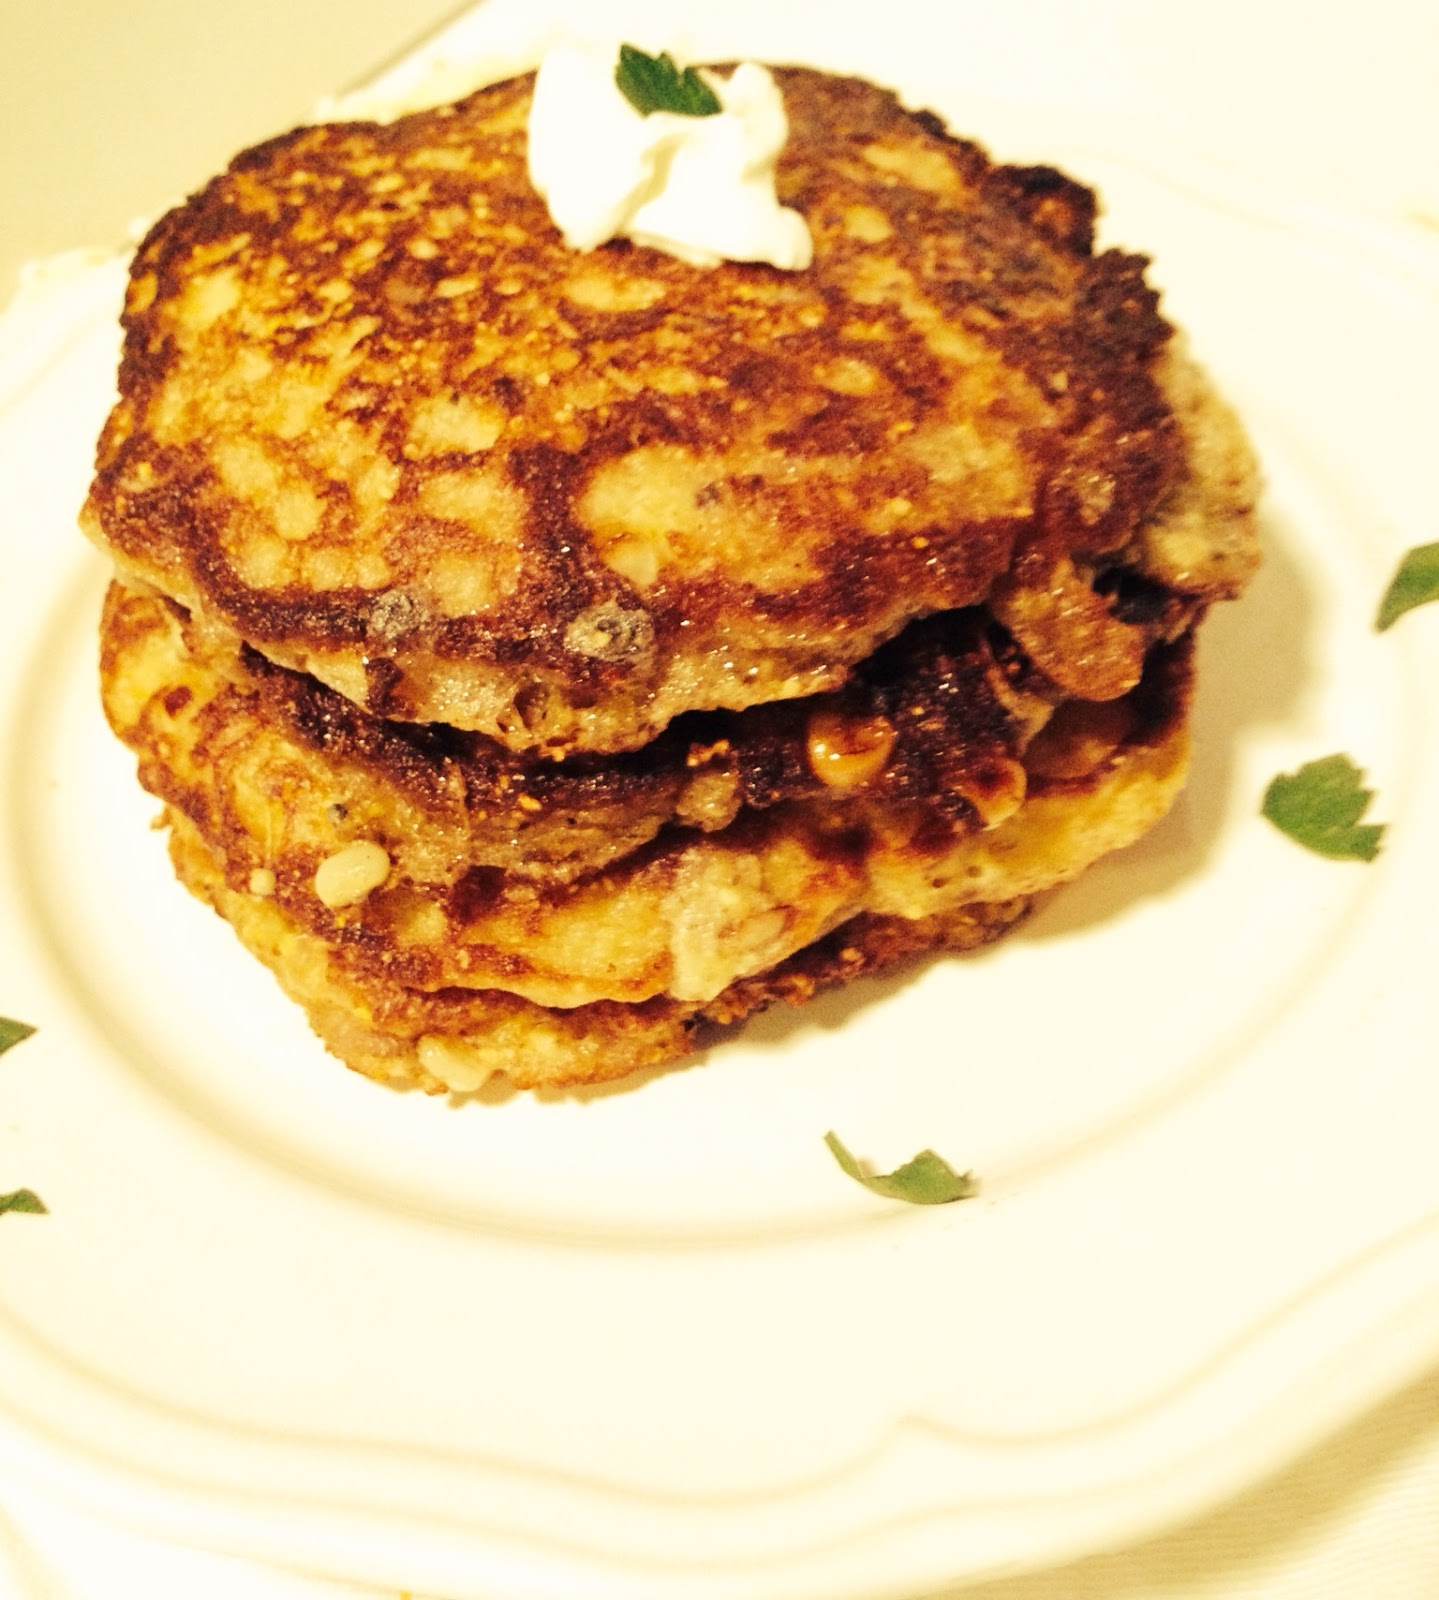 Corn Griddle Cakes with Turkey Sausage | Lazy Girl Dinners